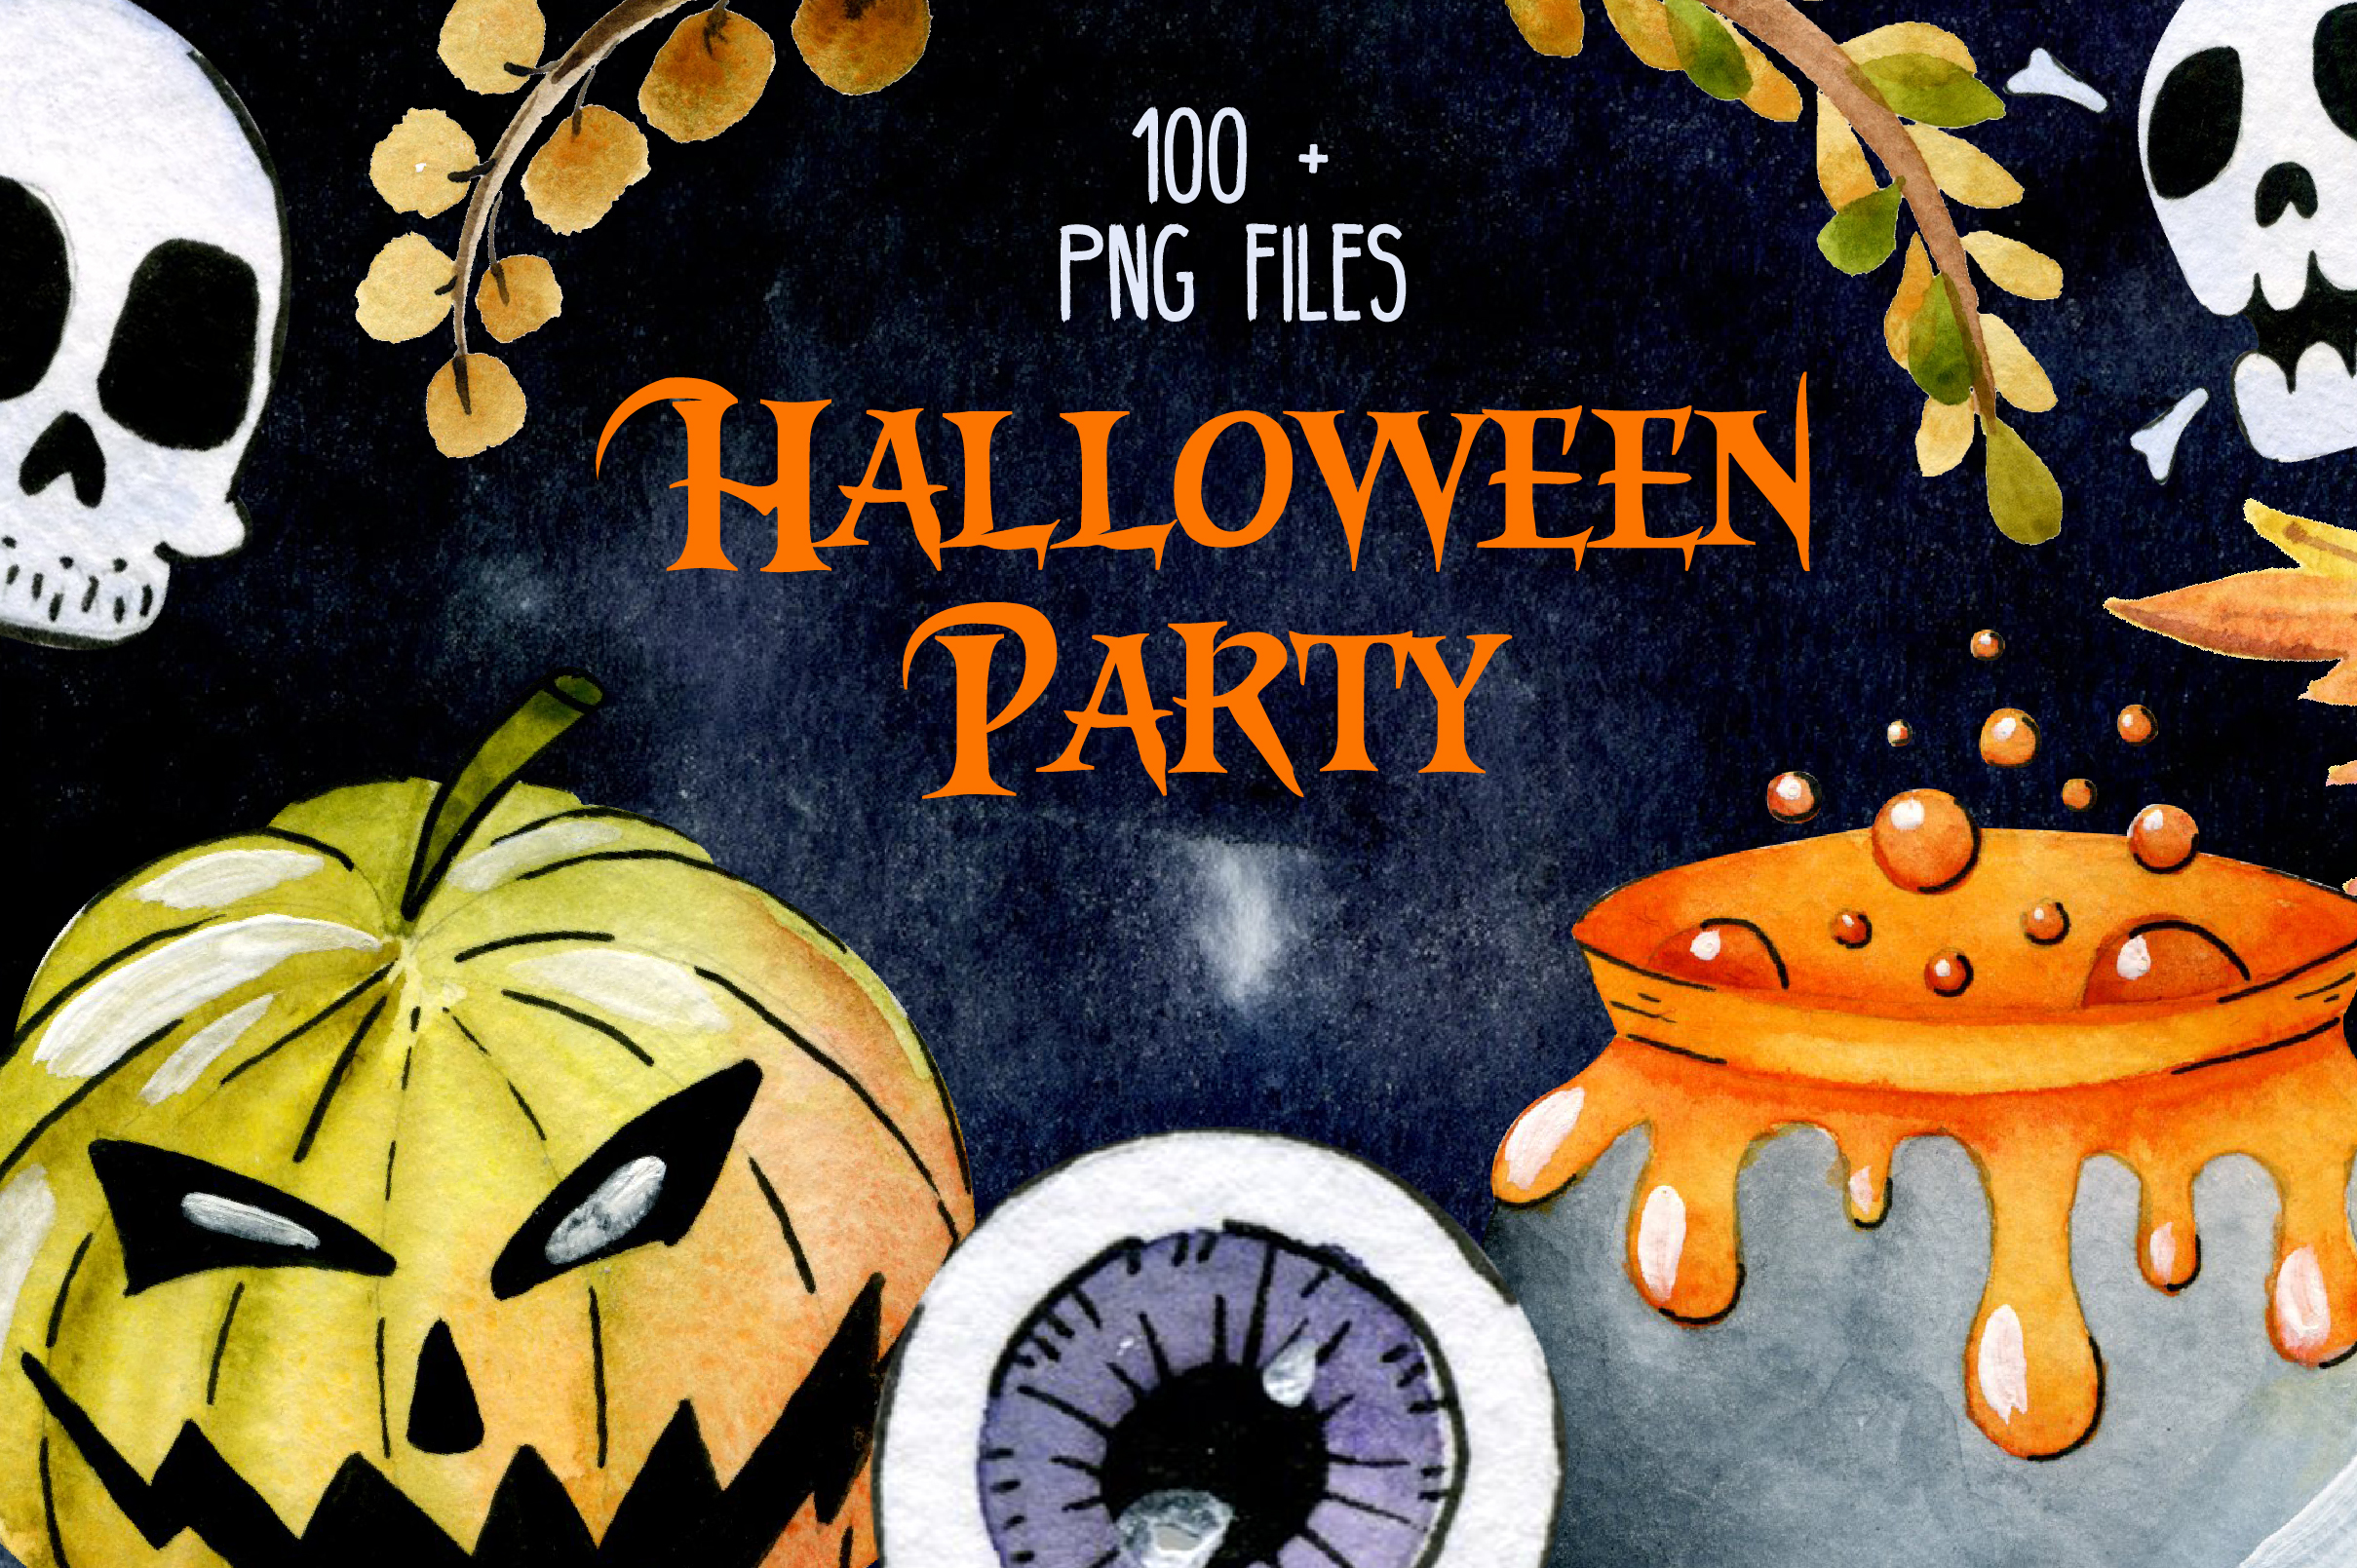 Halloween Party example image 1